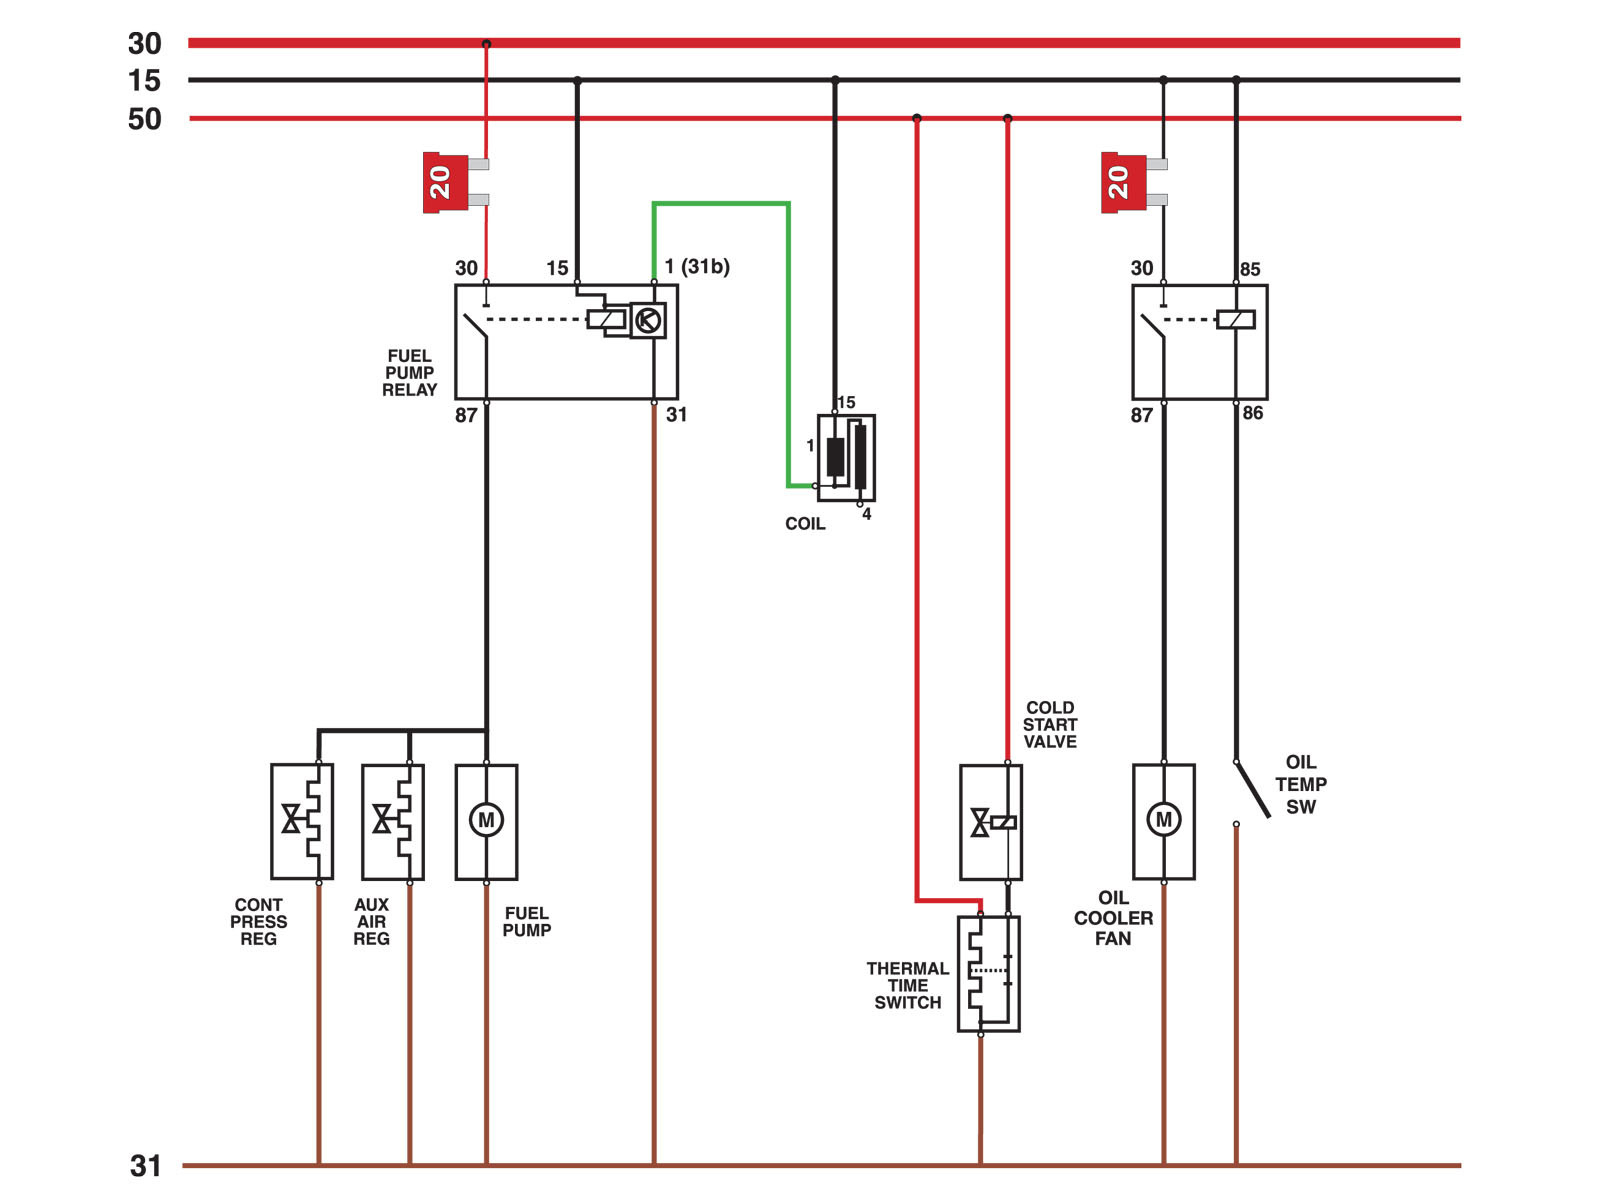 2008 Ford Escape Fuel Pump Relay Location Beautiful Electric Fuel - Electric Fuel Pump Wiring Diagram